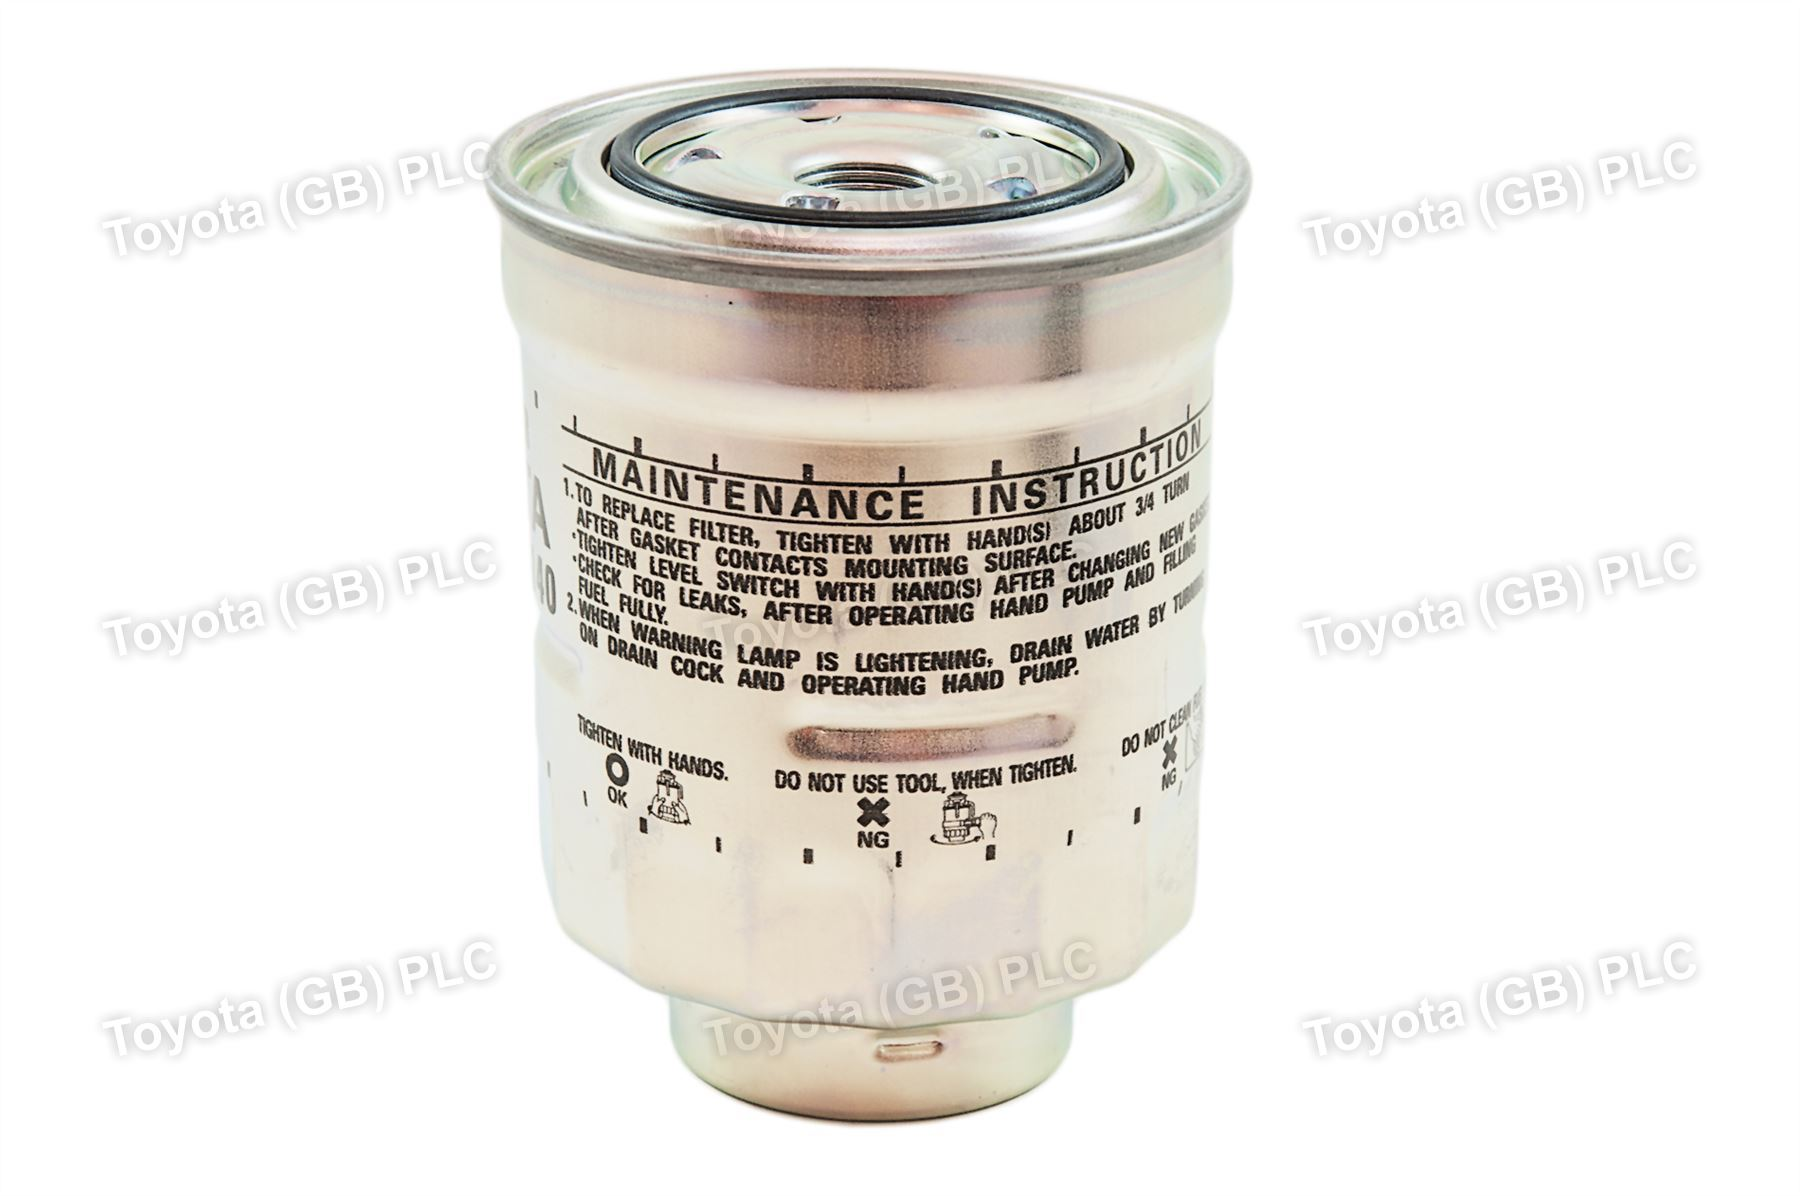 Genuine Toyota Auris/Corolla Car Replacement Fuel Filter 2339026140